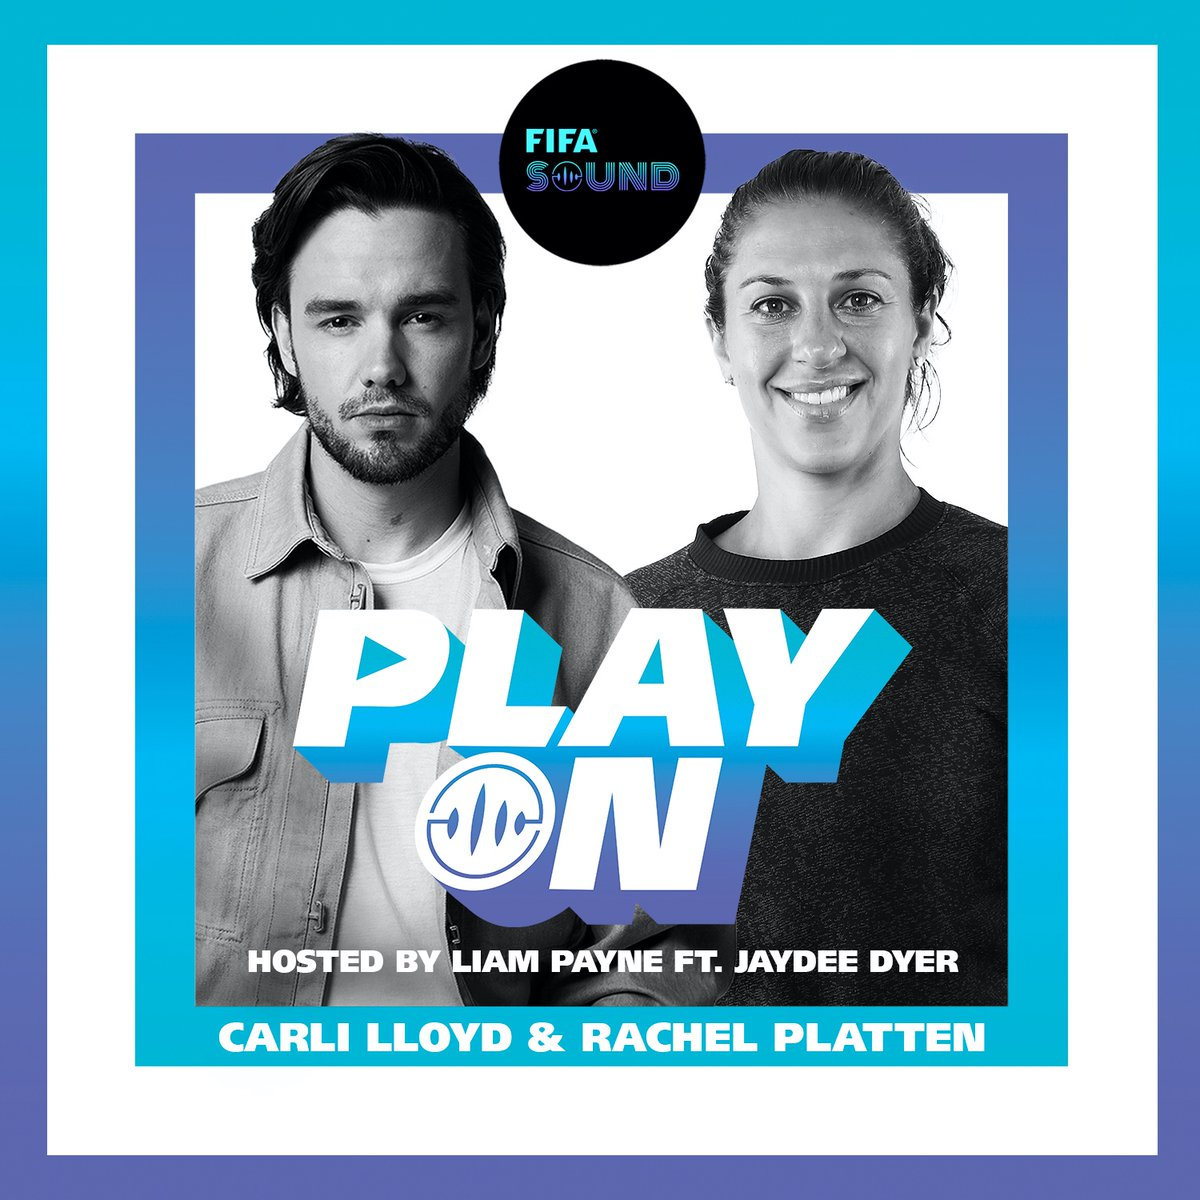 Tune-in to the new episode of our #PlayOn podcast to hear @LiamPayne chat ⚽ and 🎶 with @CarliLloyd and Rachel Platten. ↳